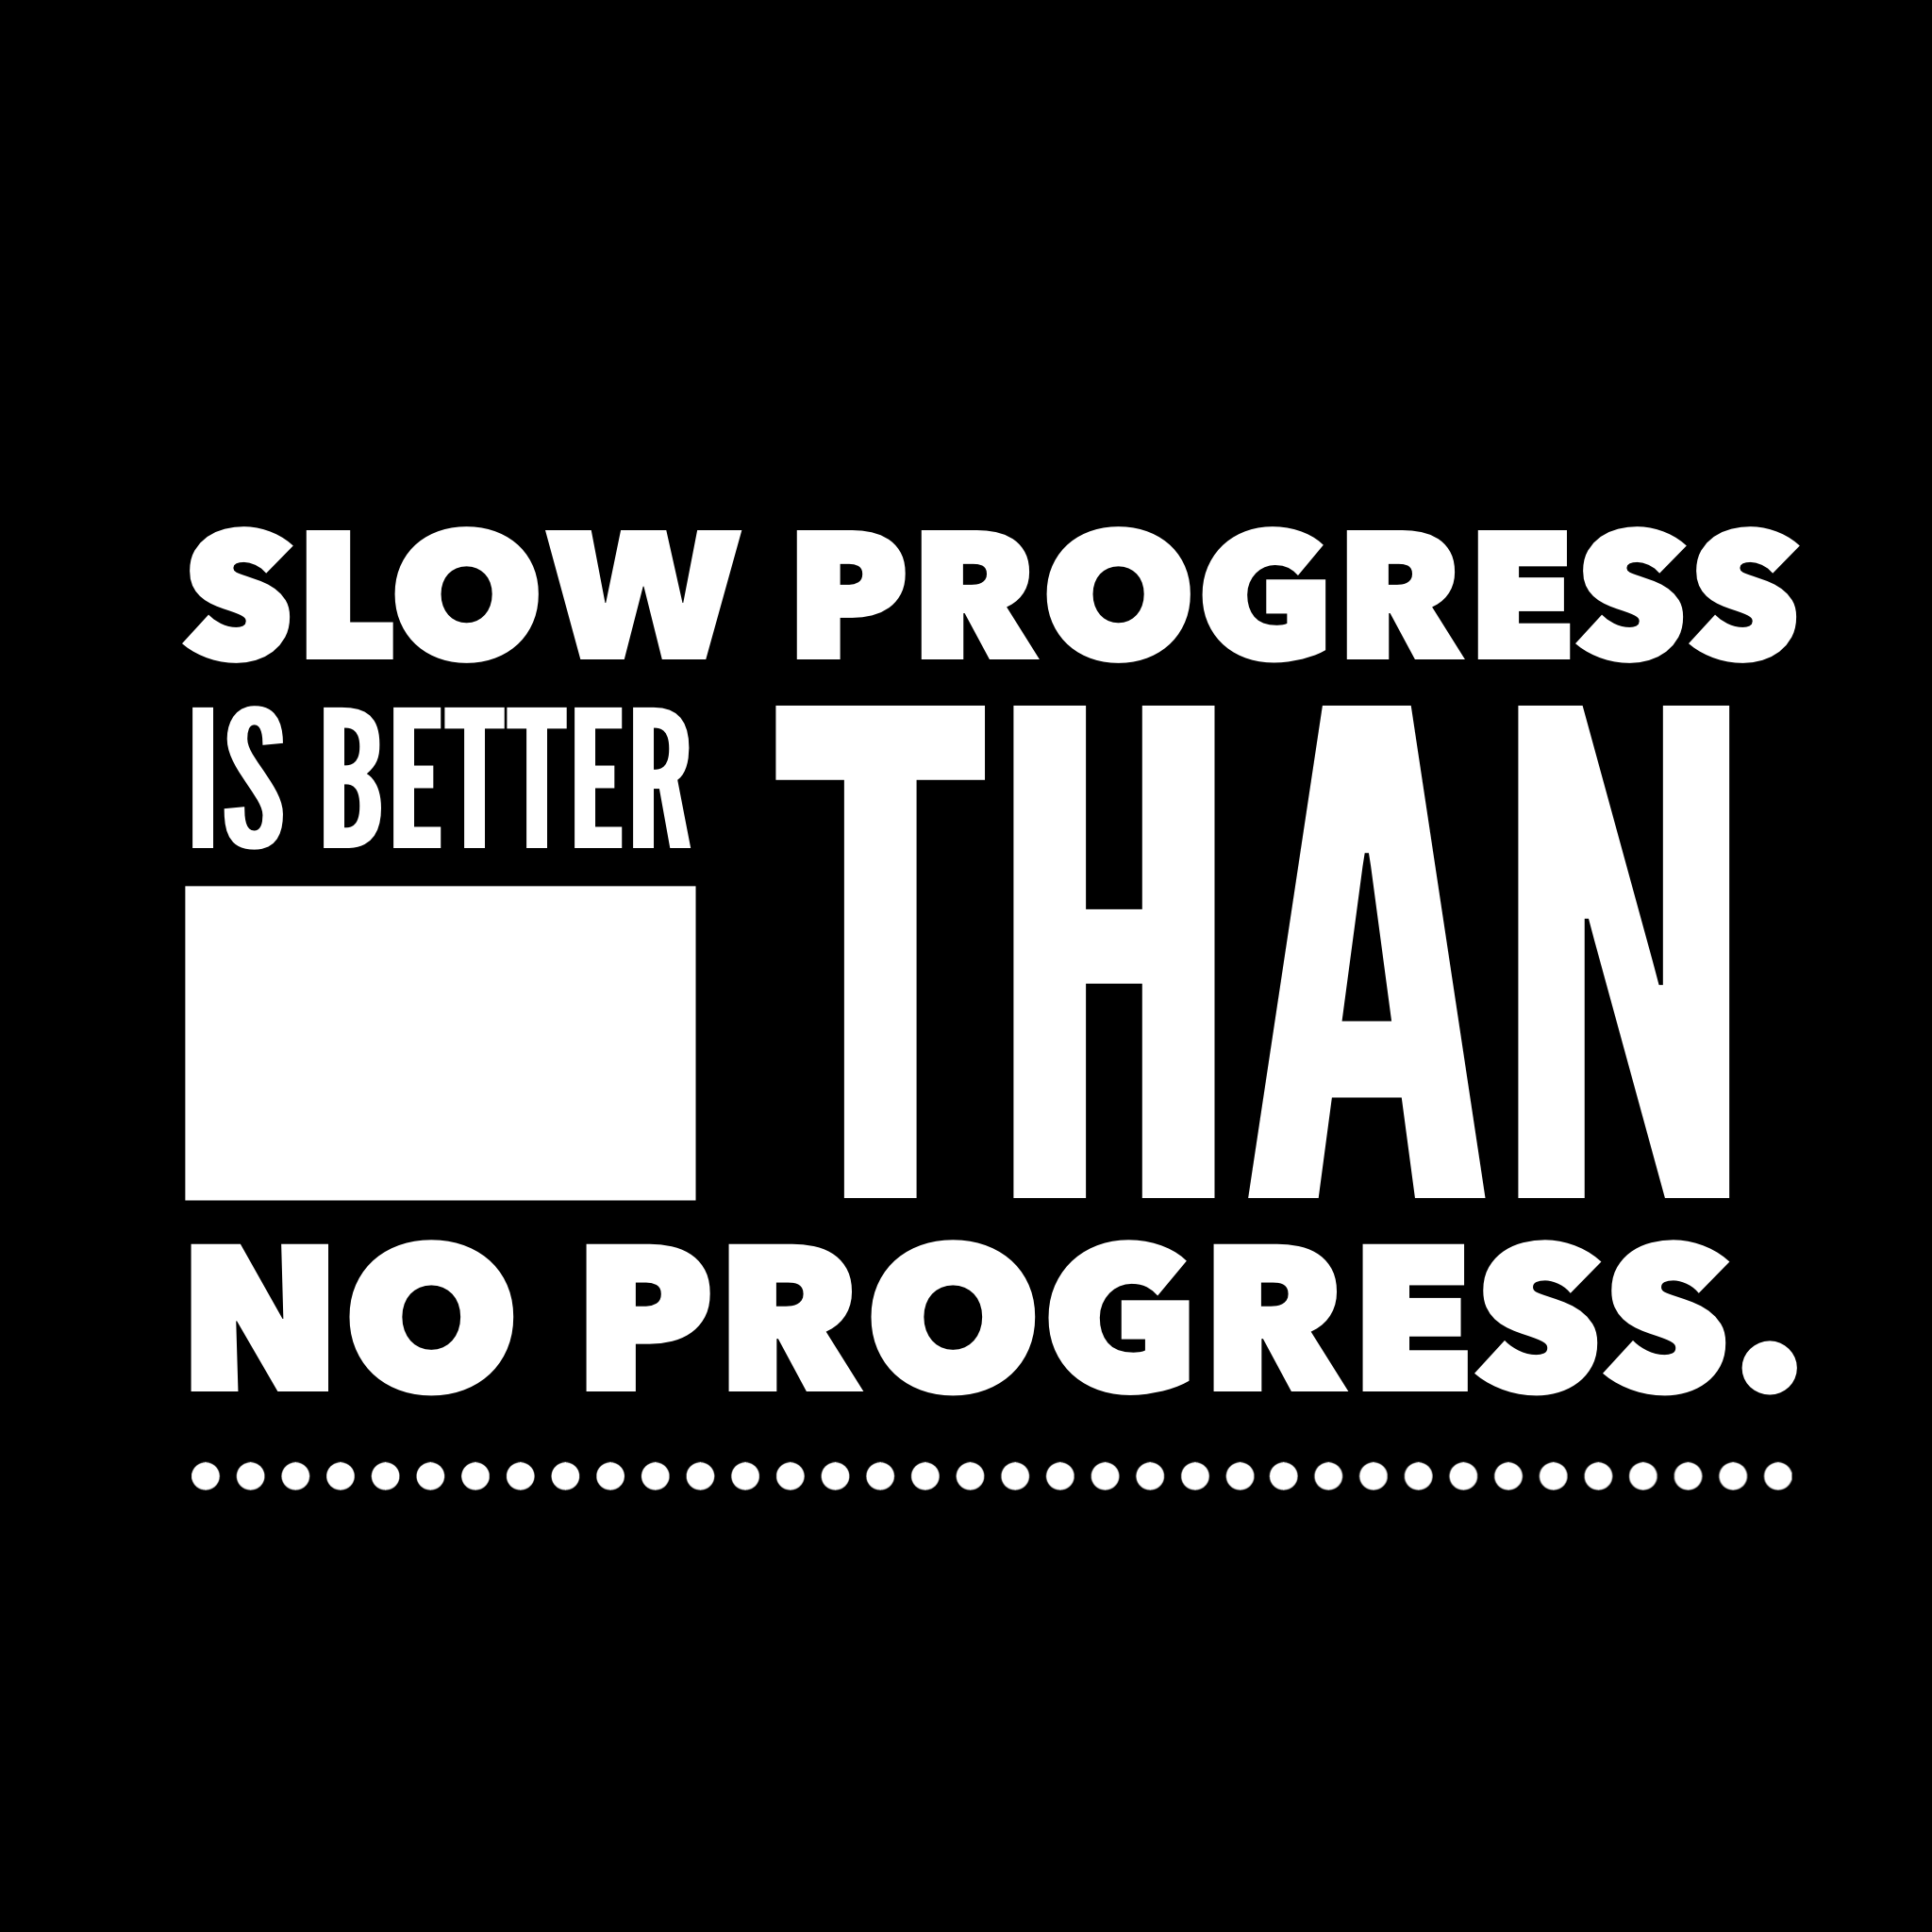 Progress Quotes Slow Progress Is Better Than No Progress#quote #quoteoftheday .